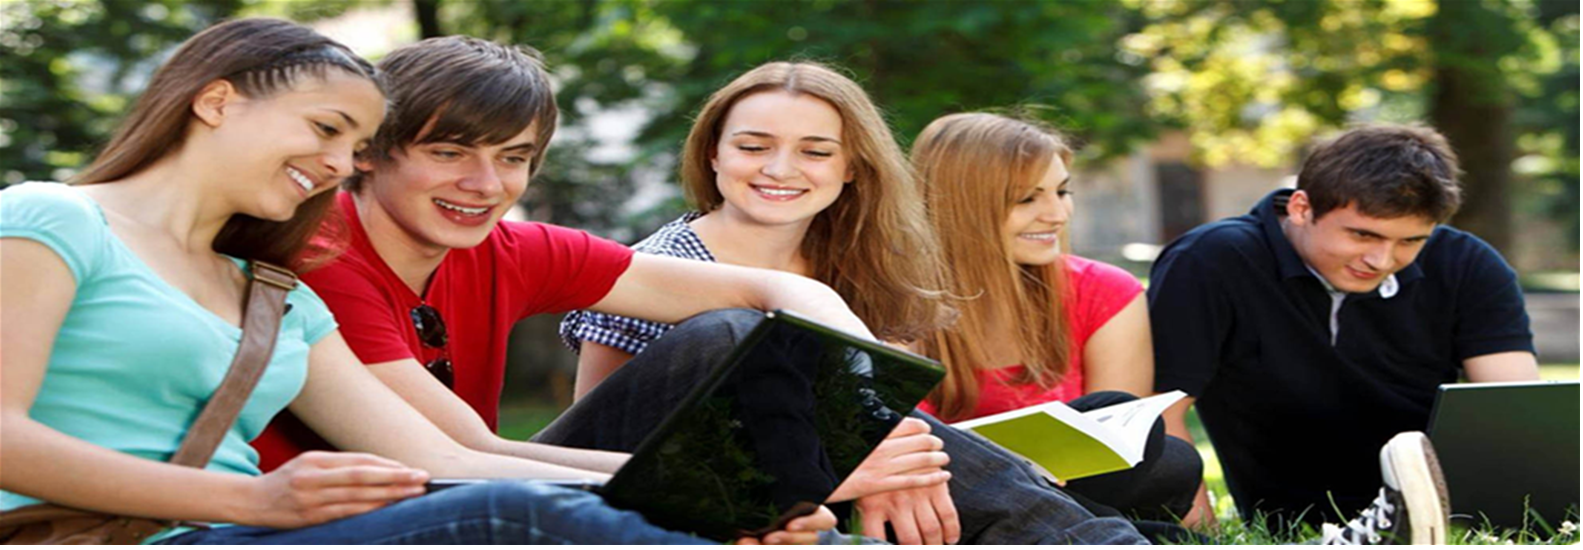 buy essay online reviews